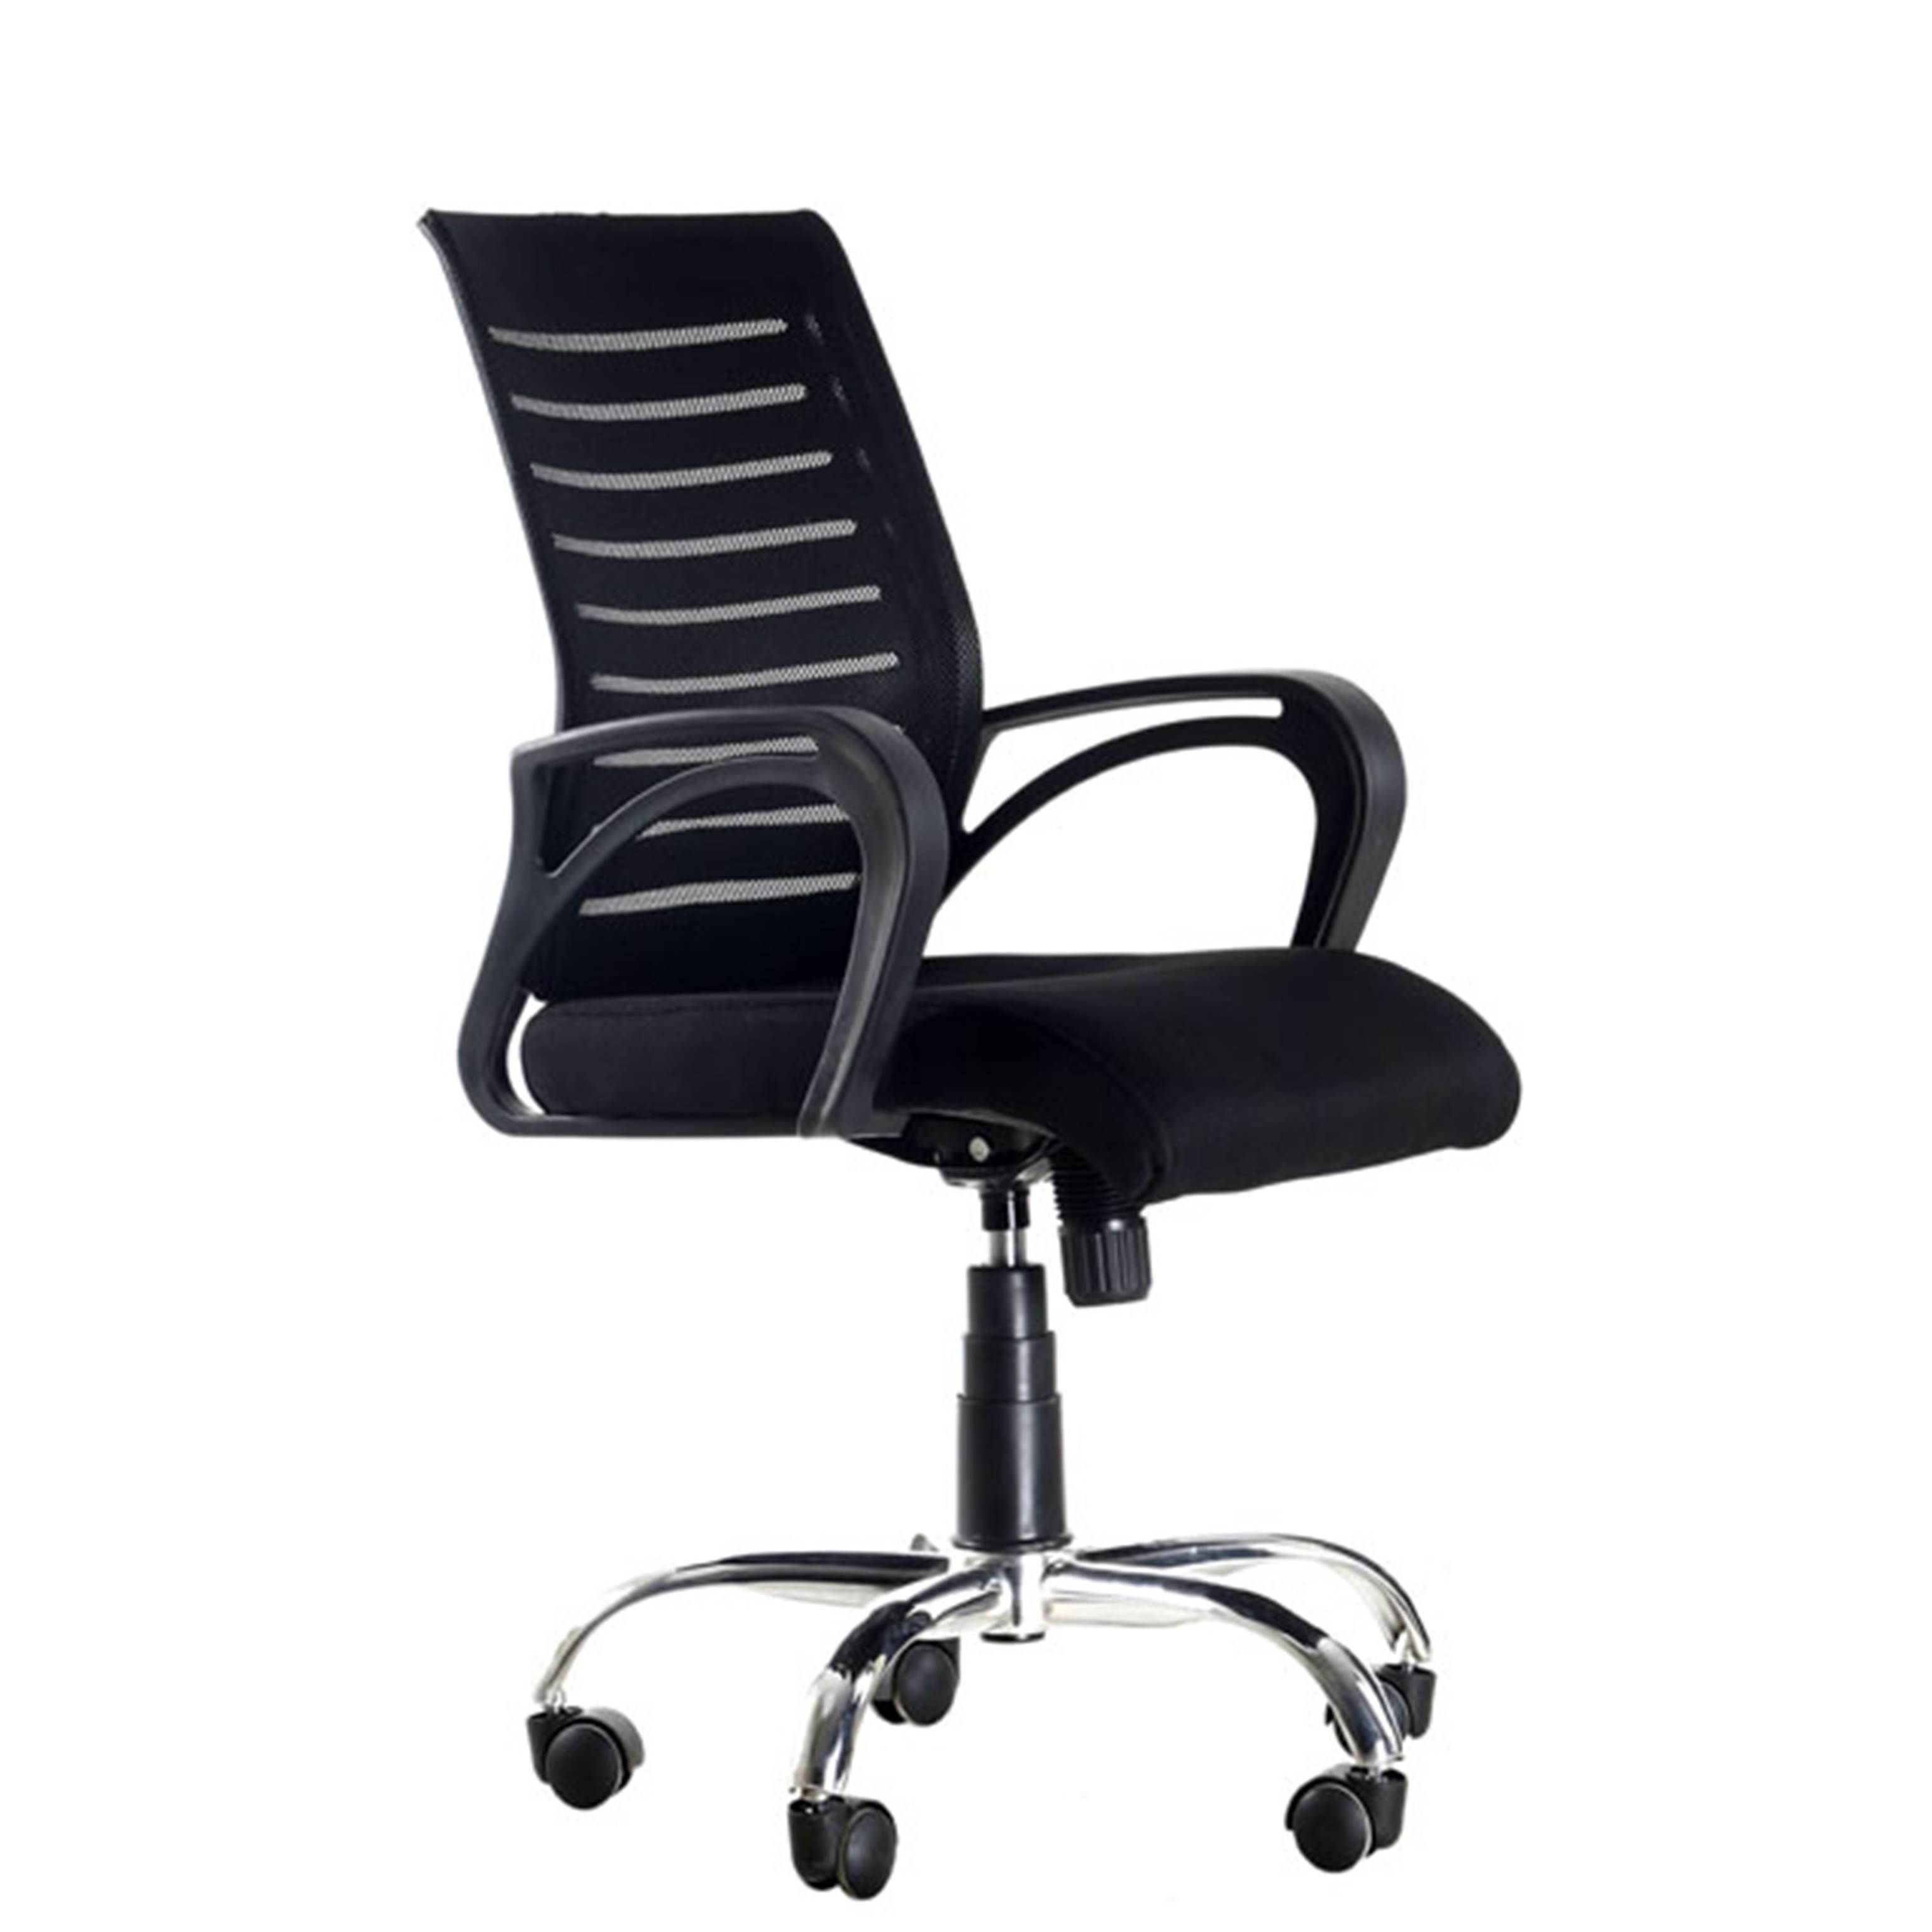 office chair online india swing on rent regent boom high back buy